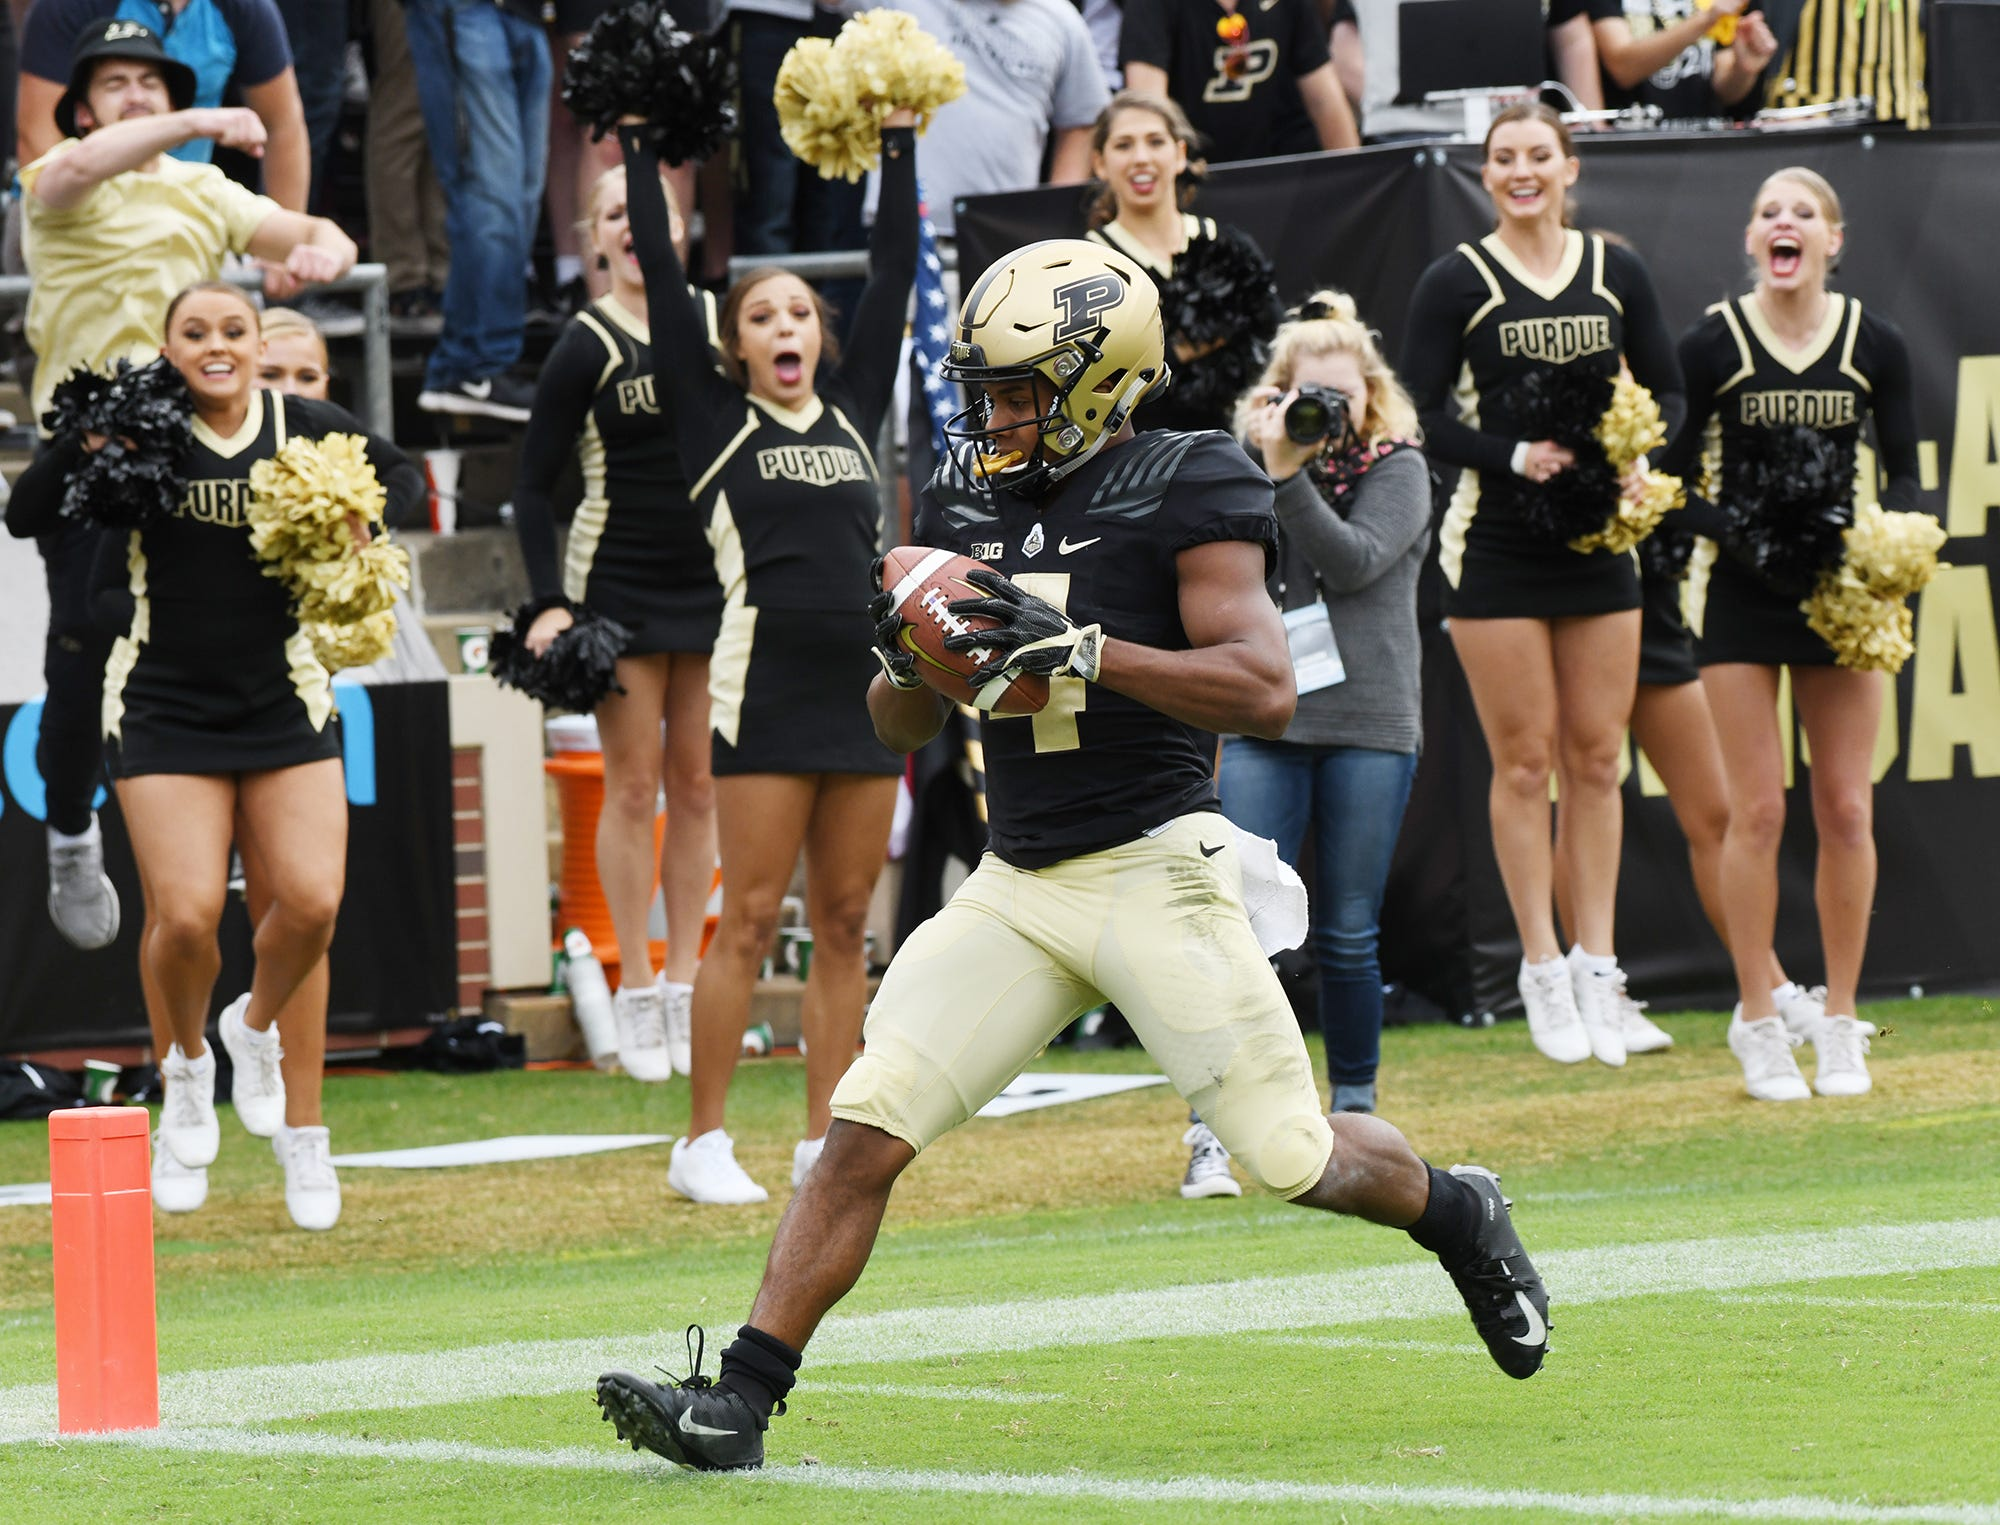 Purdue freshman receiver Rondale Moore has 57 catches for 728 yards and seven touchdowns this season.